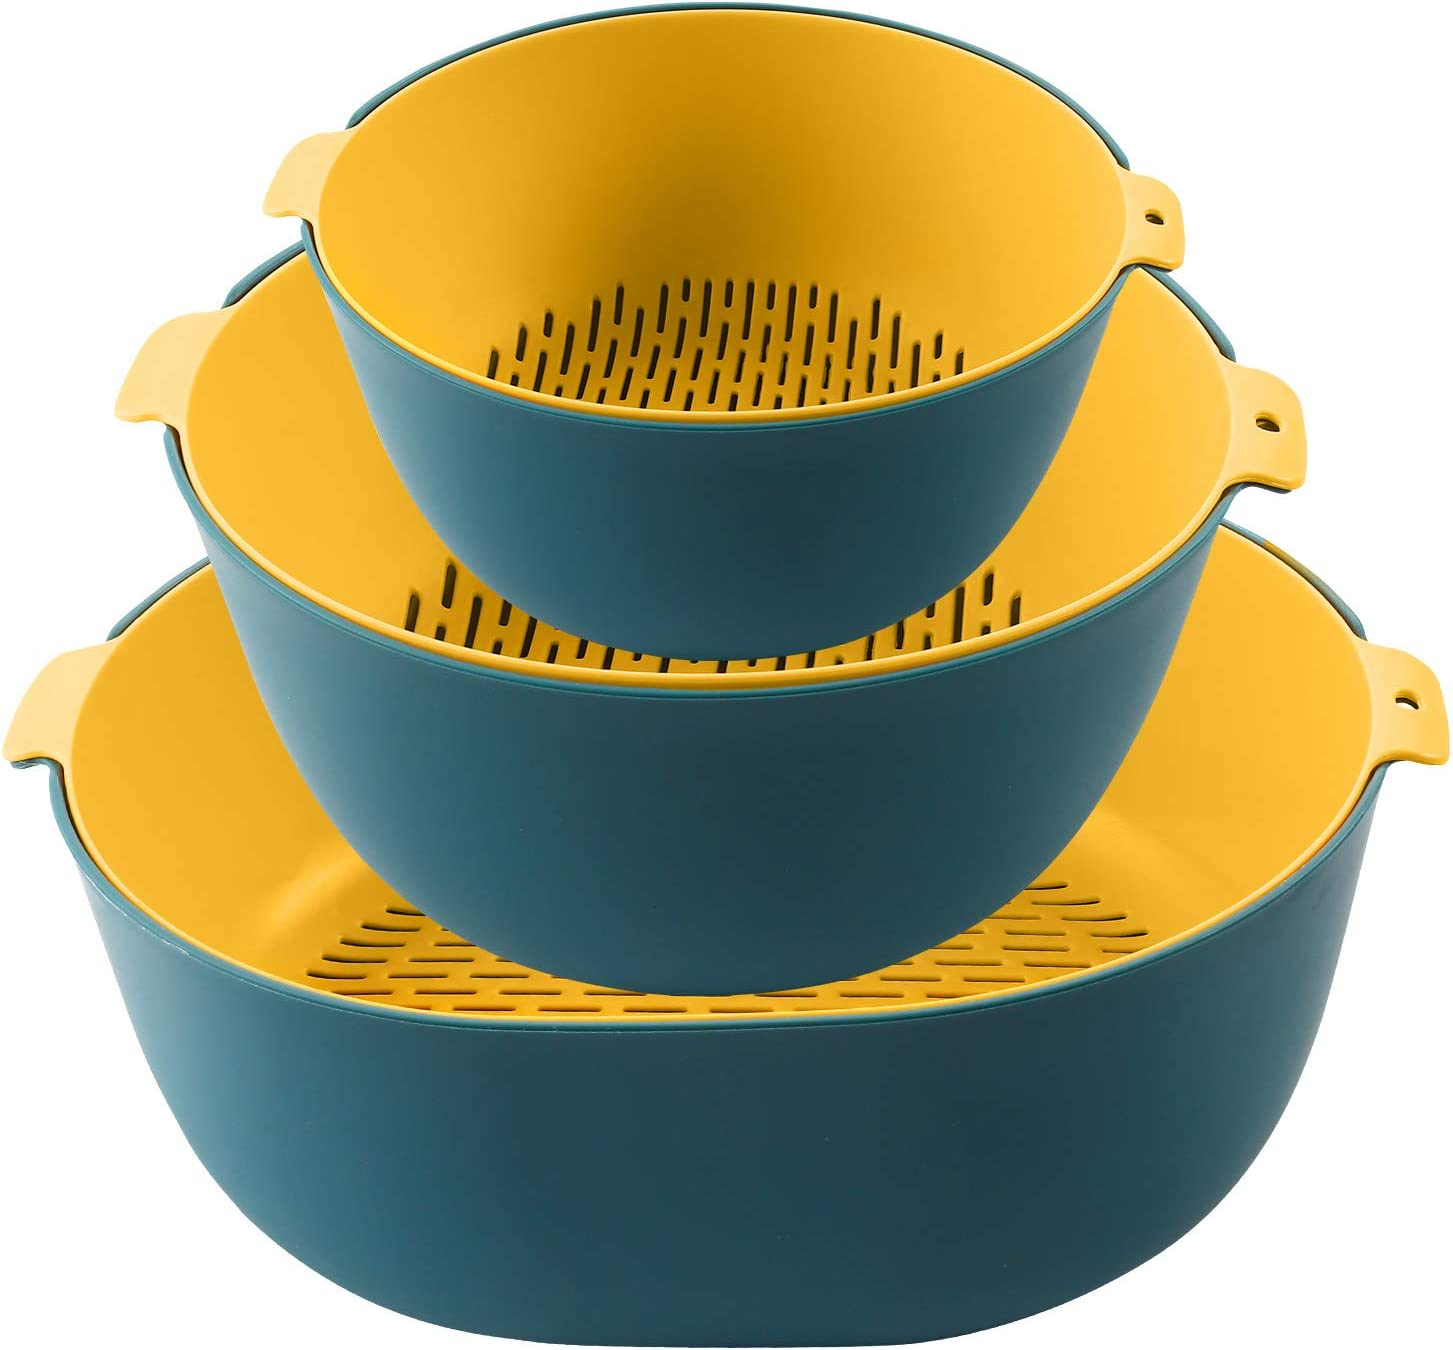 BARBBLY 6-pieces Plastic Strainer and Colander Stackable Set,Soak, Wash and Drain Vegetables and Fruit,2 pcs 5.5 Quart,2 pcs 3.5 Quart and 2 pcs 1.5 Quart(Teal Blue and Sunburst)